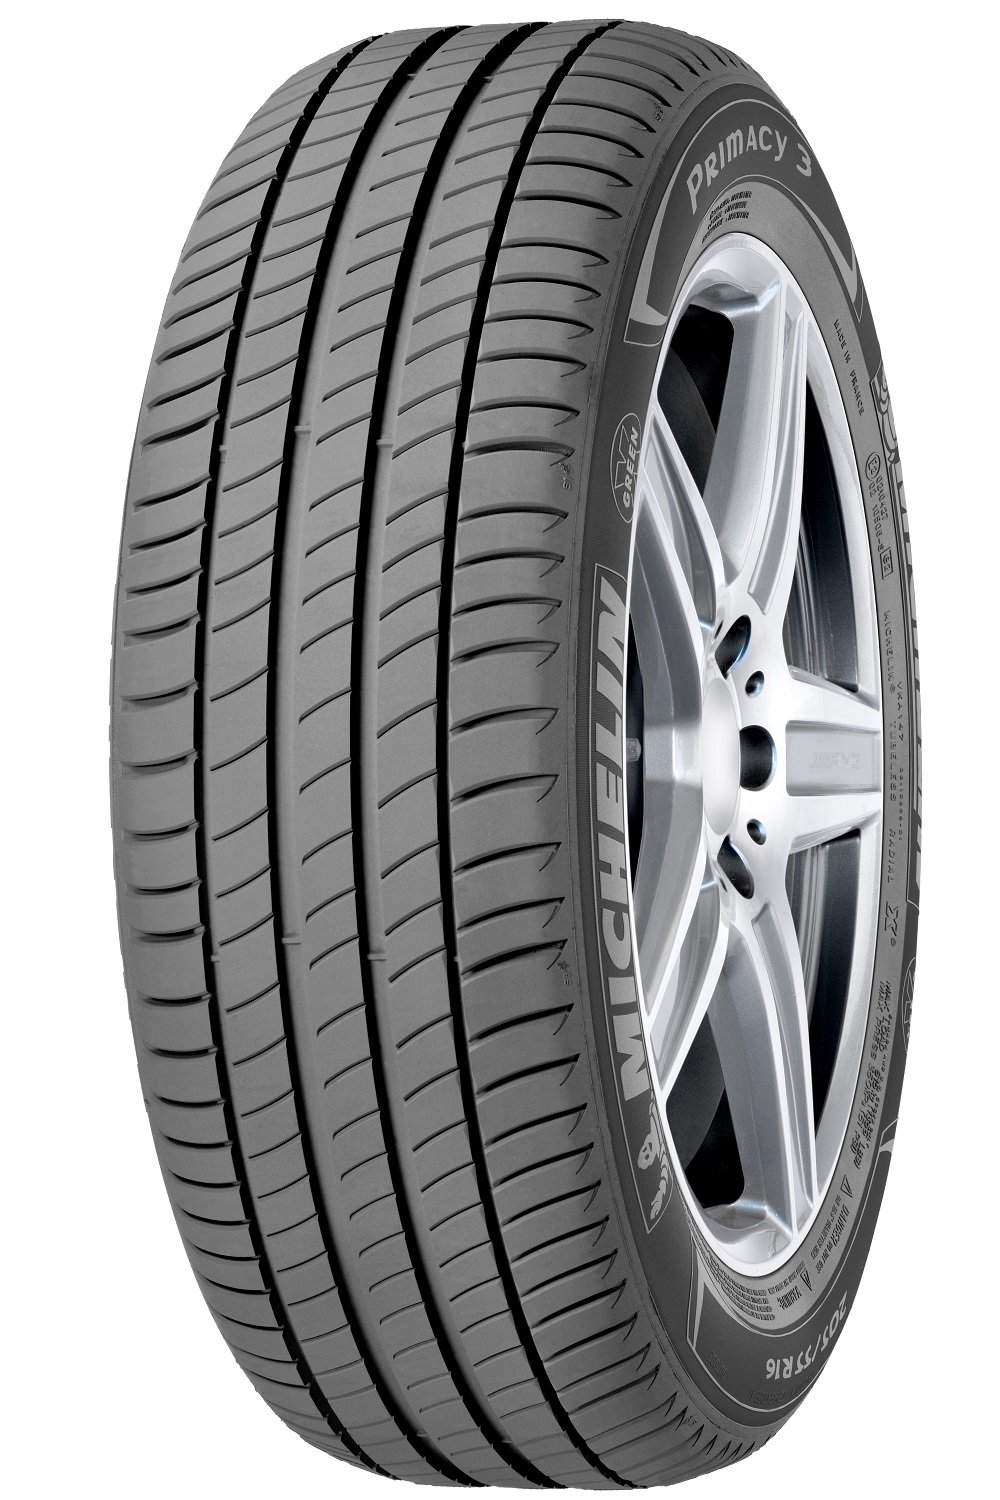 Pneu MICHELIN PRIMACY 3 215/55R17 94 W